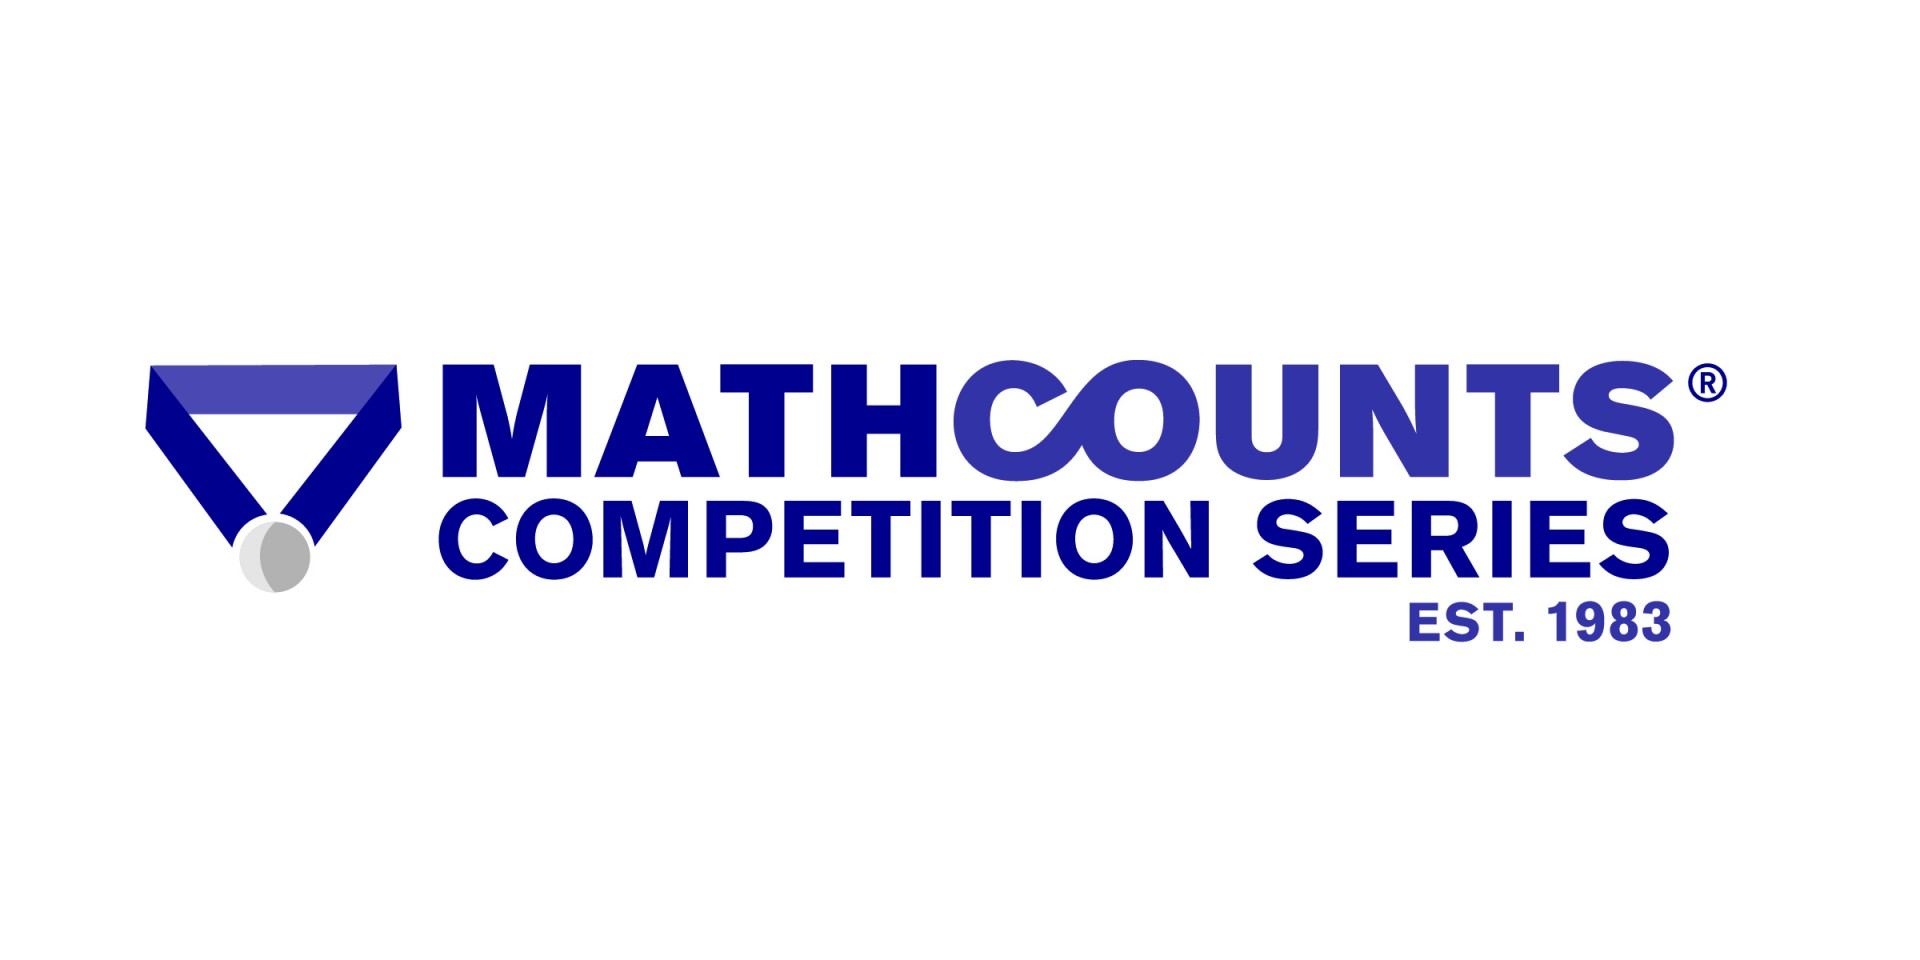 Middle School Math Whizzes to Test Their Skills at DU – Mathcounts Worksheets